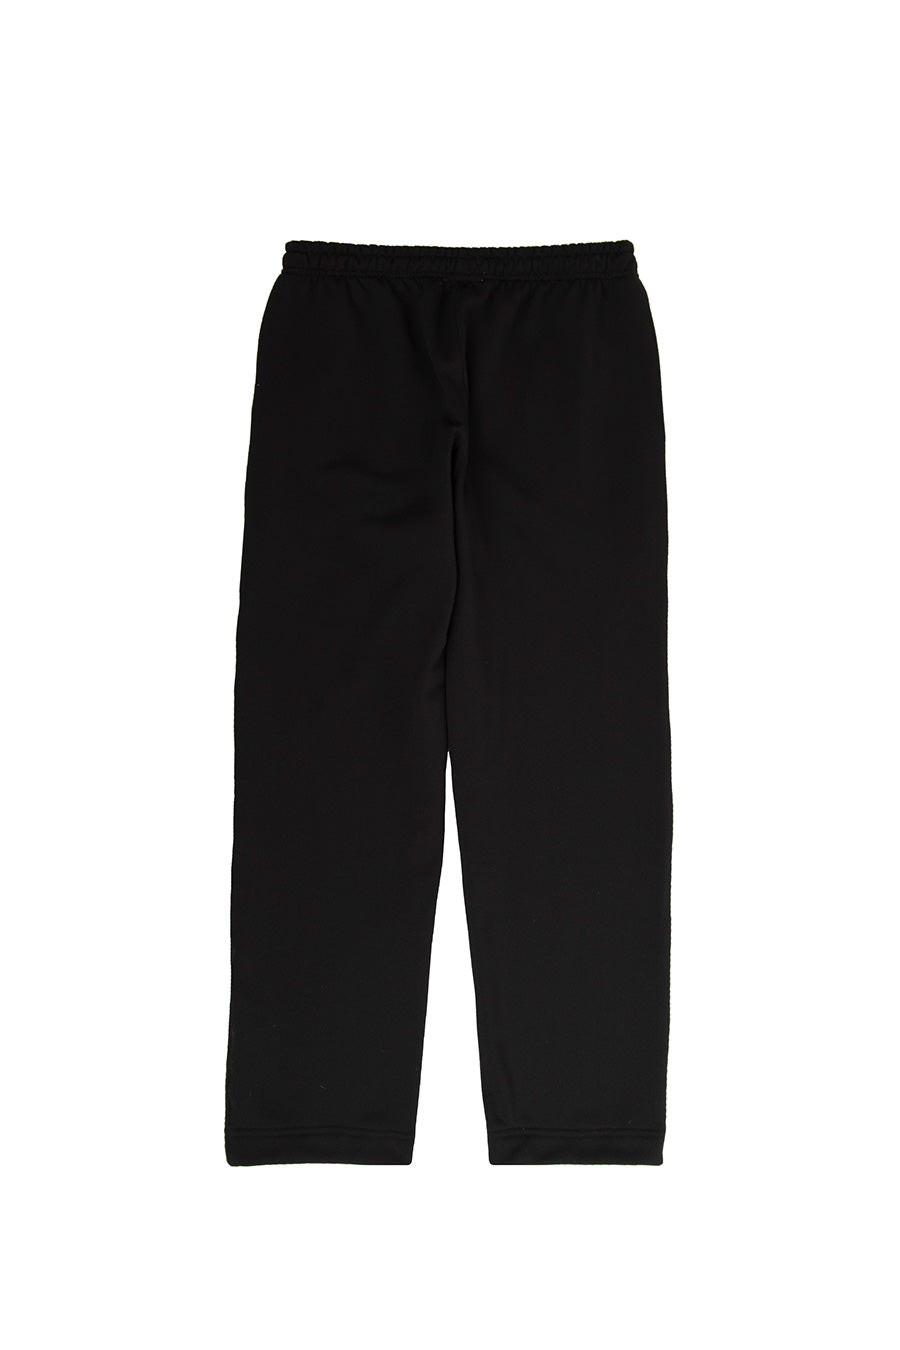 Lady White Co. - Black Sport Trouser | 1032 SPACE